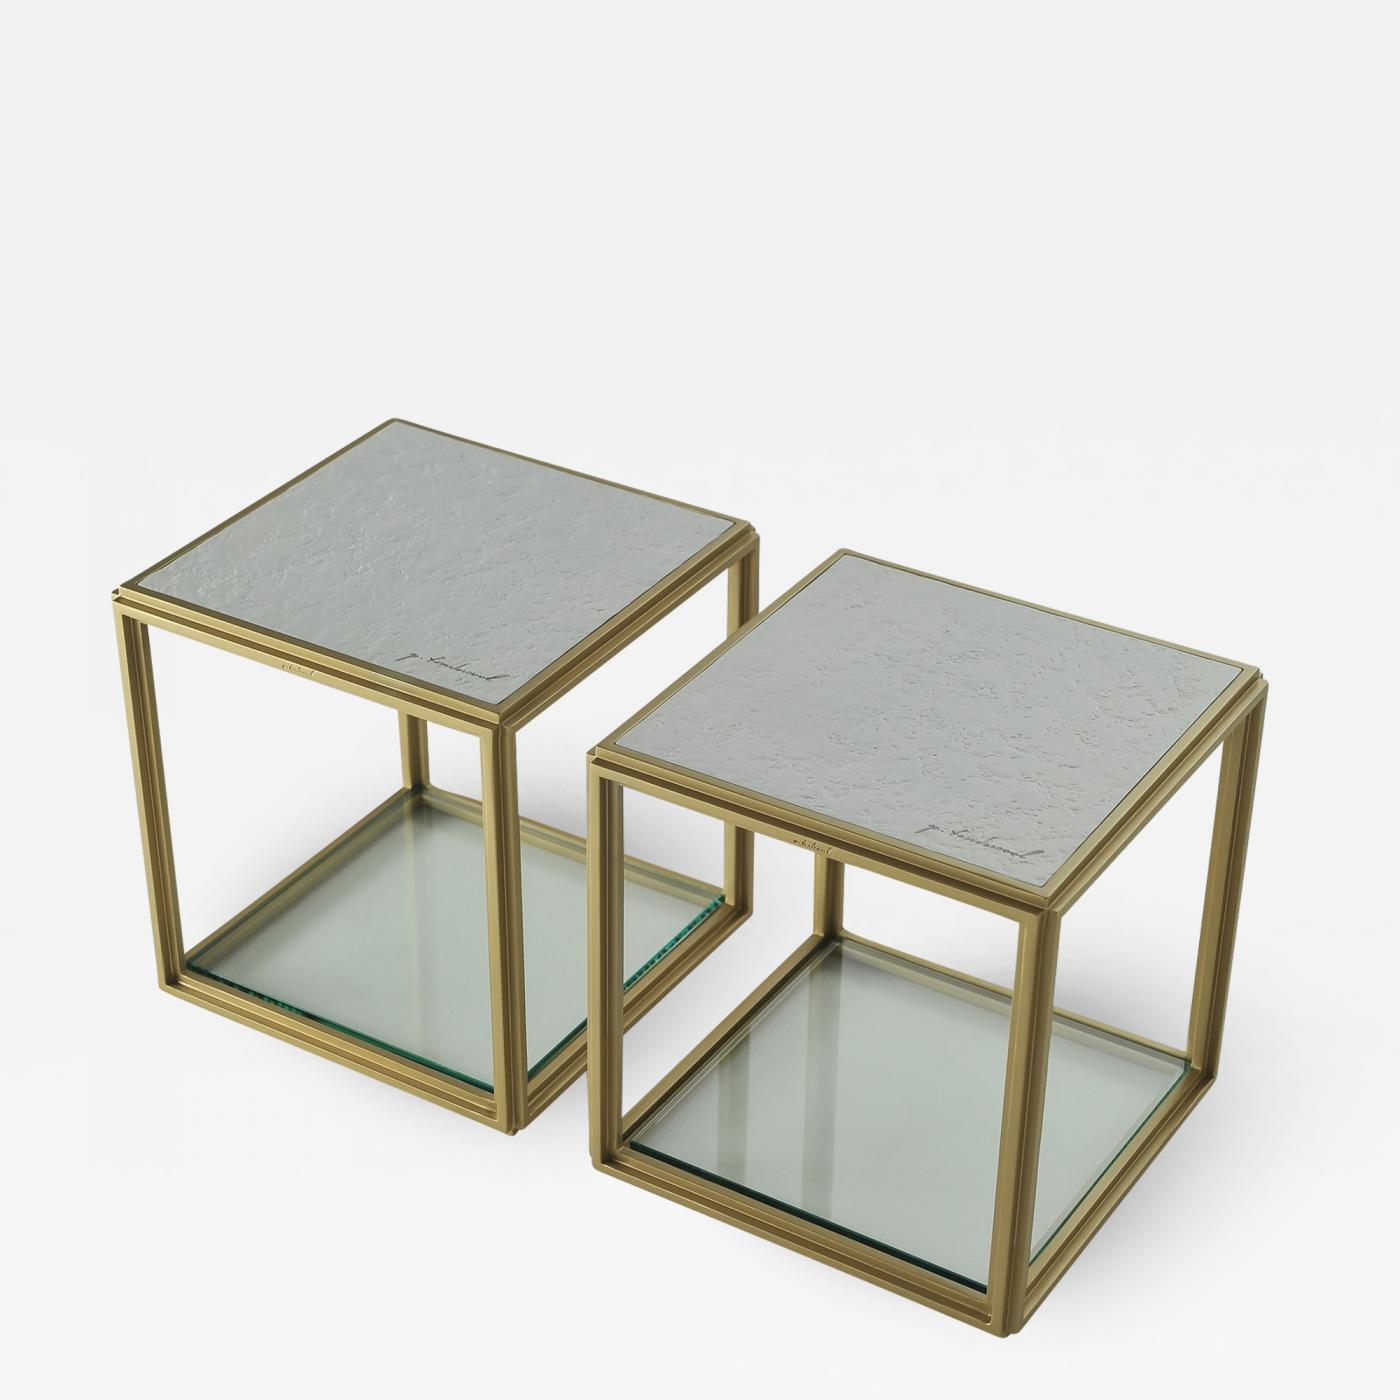 Collection Of Two Modular Brass Low Tables, Sandcast Aluminum Textured  White Top